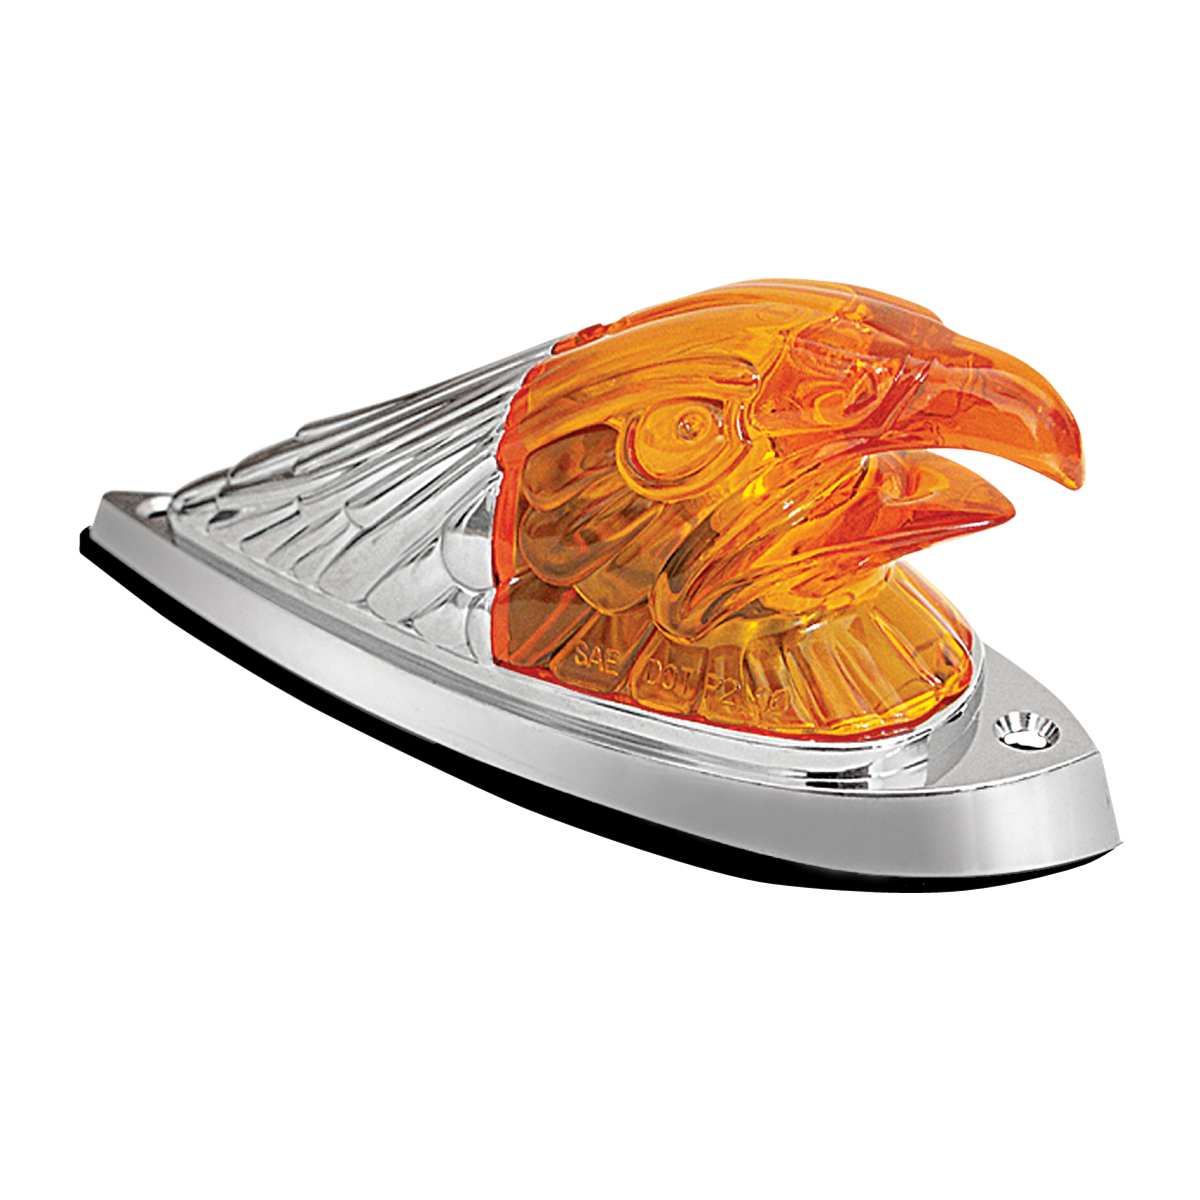 #81210 Large Eagle Head Cab Light